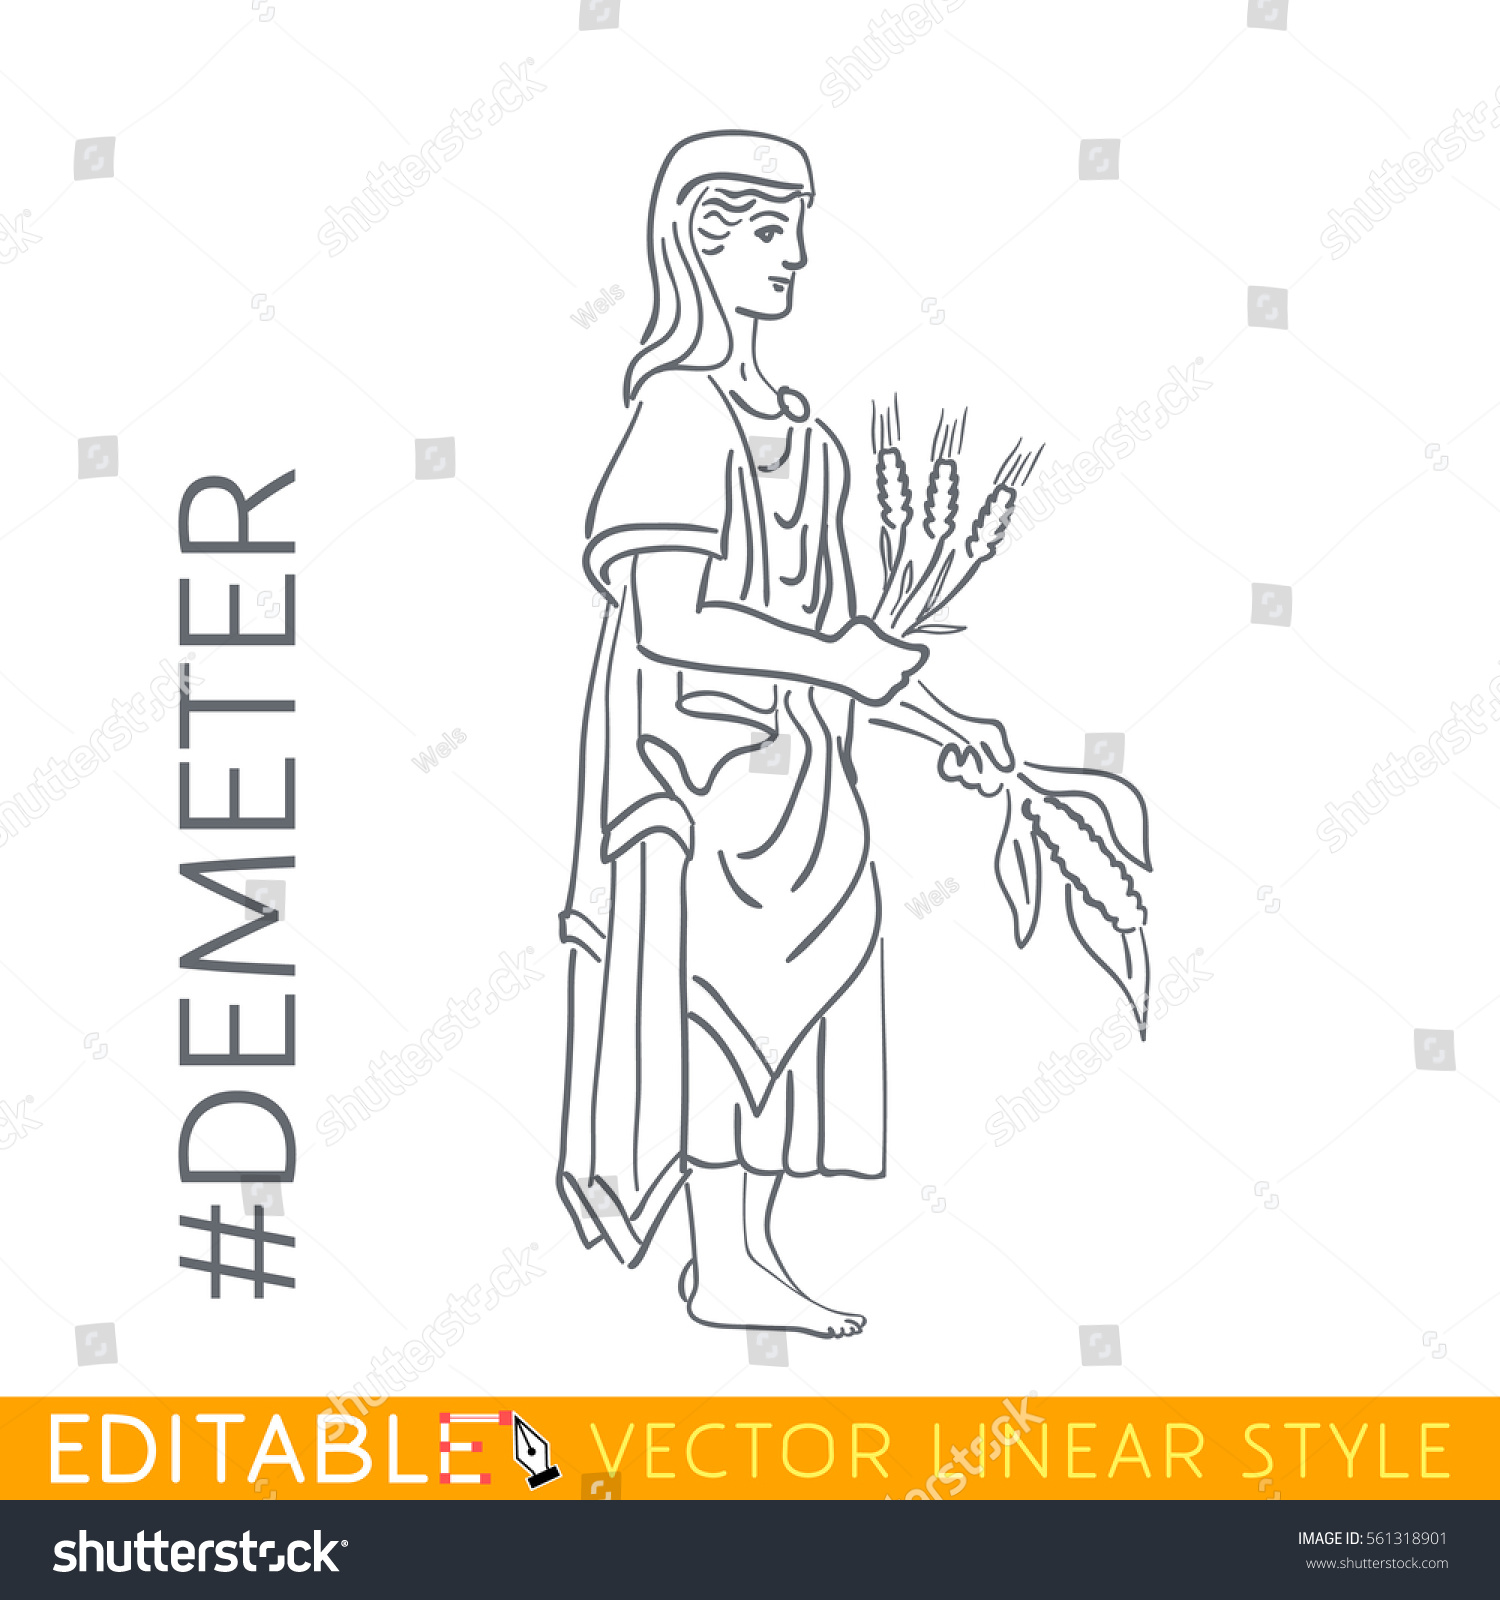 Demeter goddess grain agriculture harvest growth stock vector demeter goddess of grain agriculture harvest growth and nourishment series buycottarizona Image collections